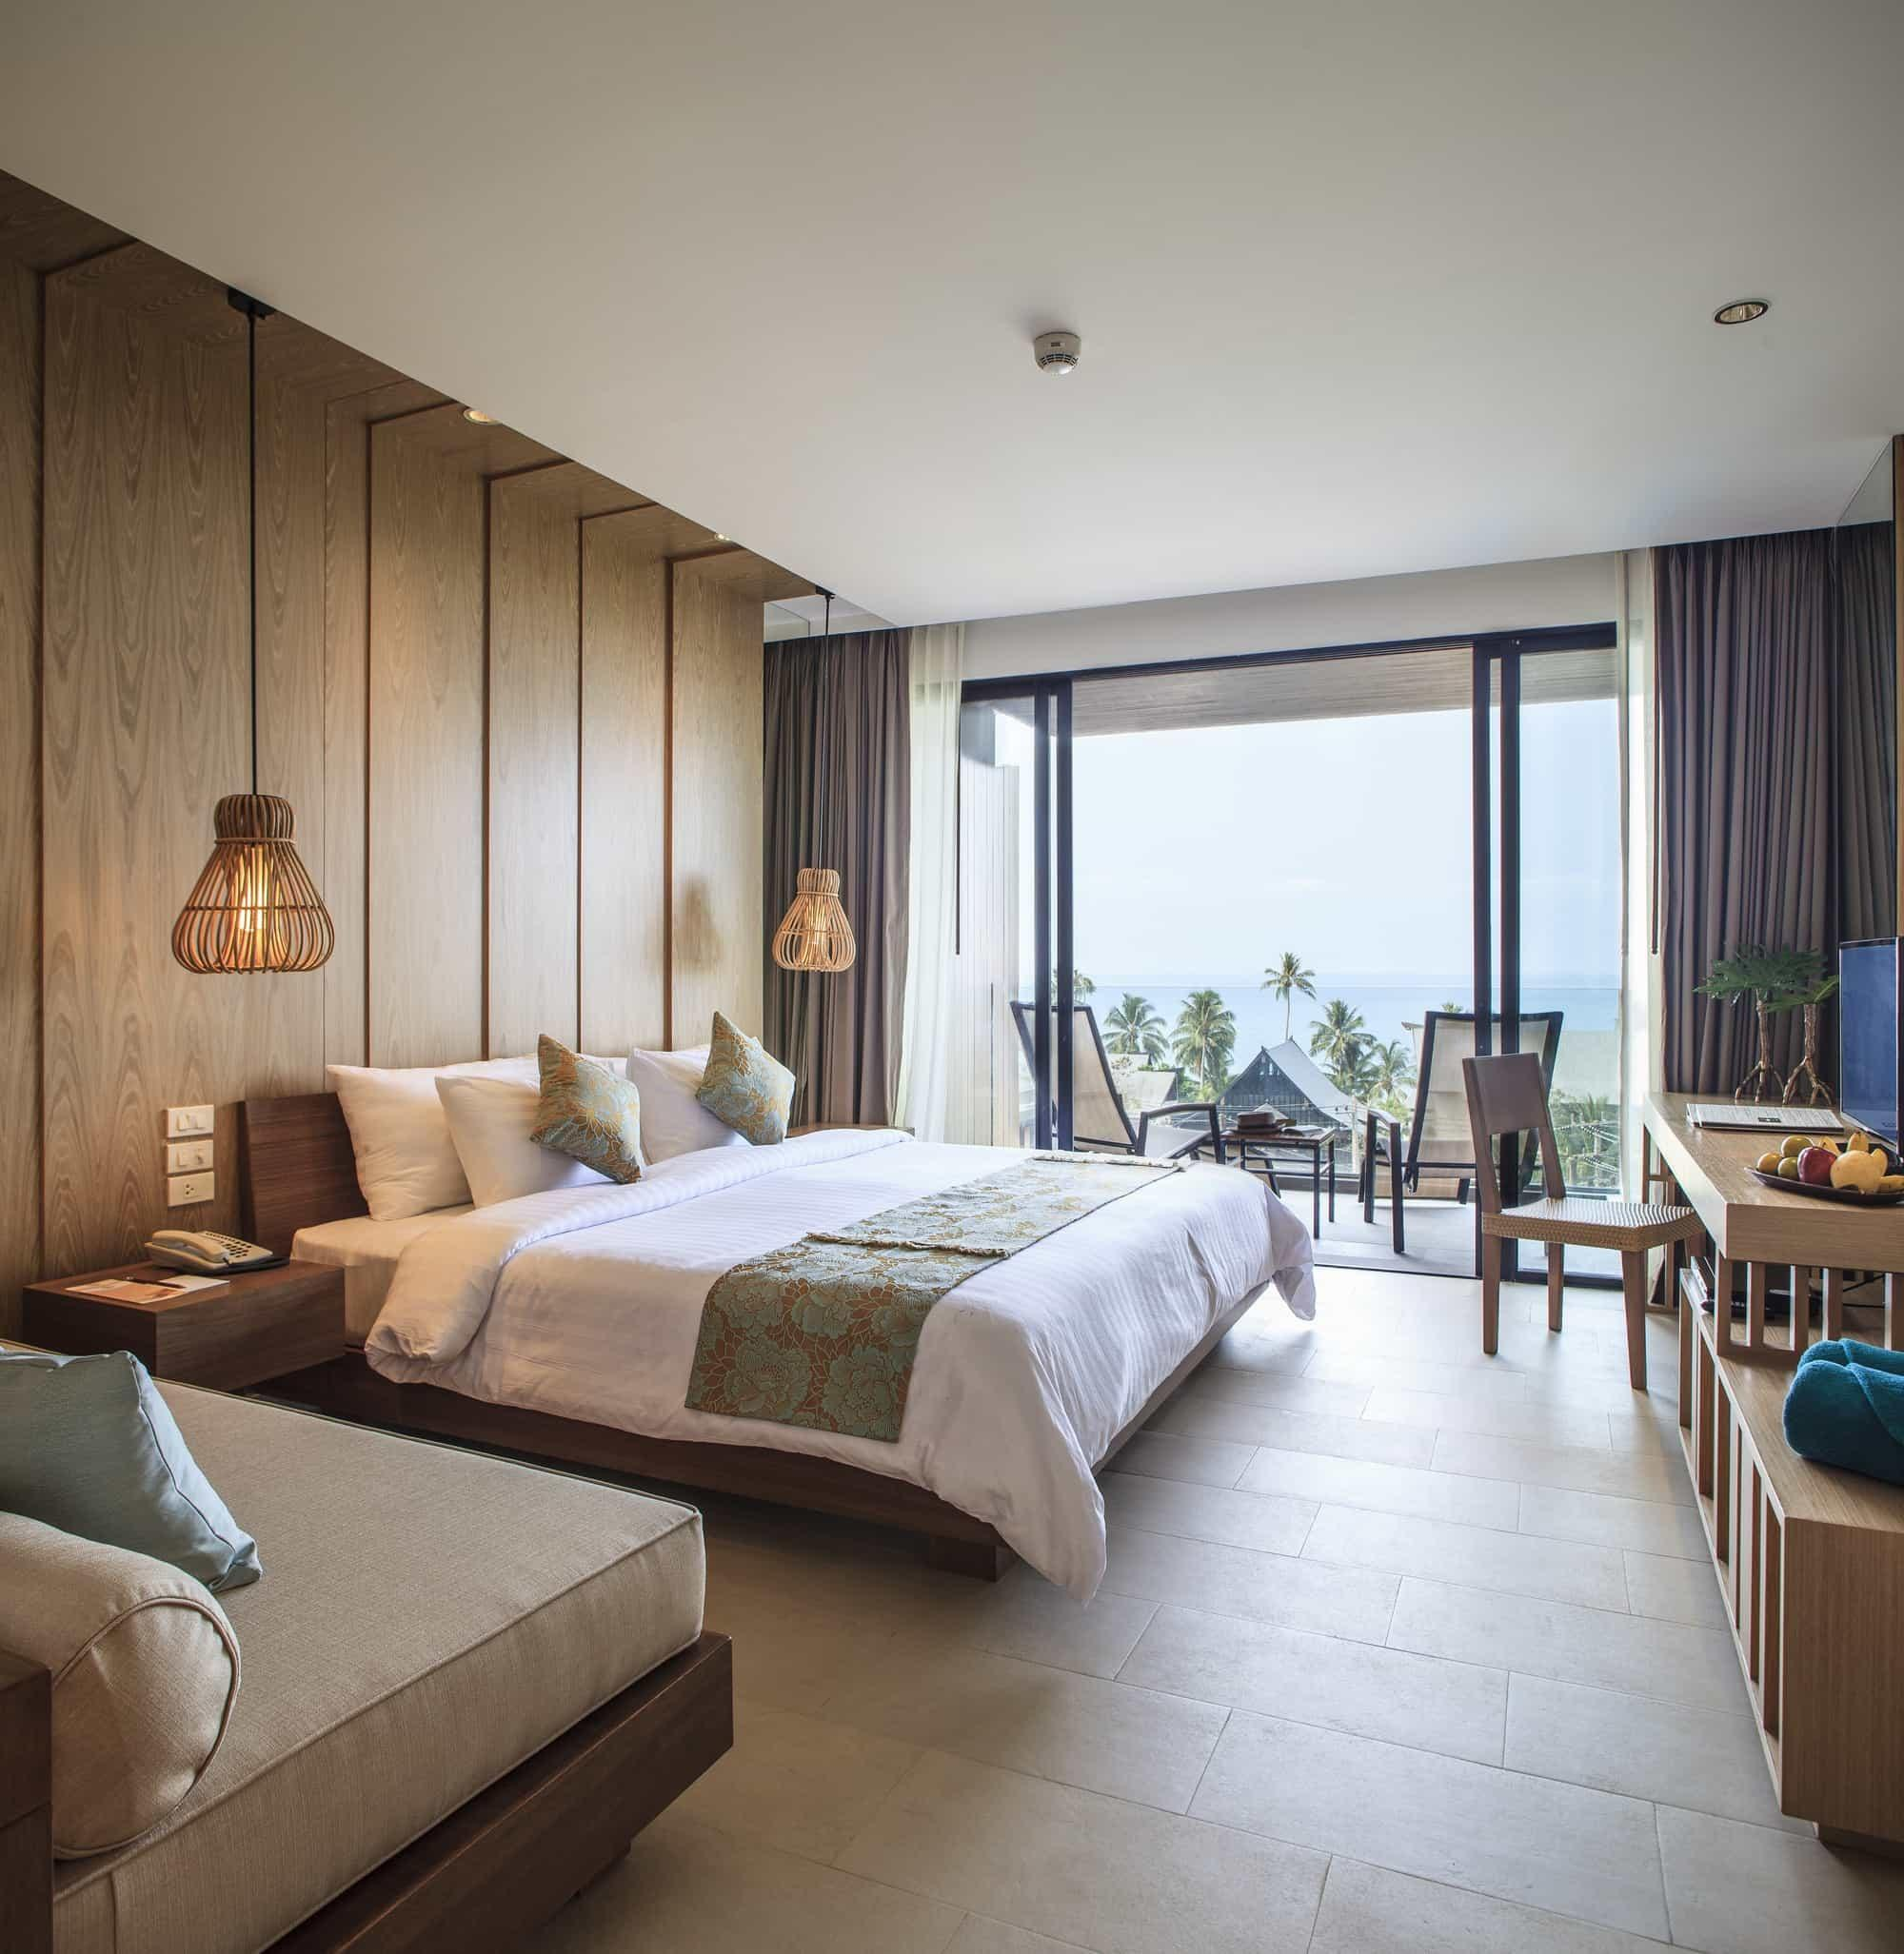 Mesmerizing Resort Style Bedroom Ideas That Will Boost Your House Stunning Photos Decoratorist